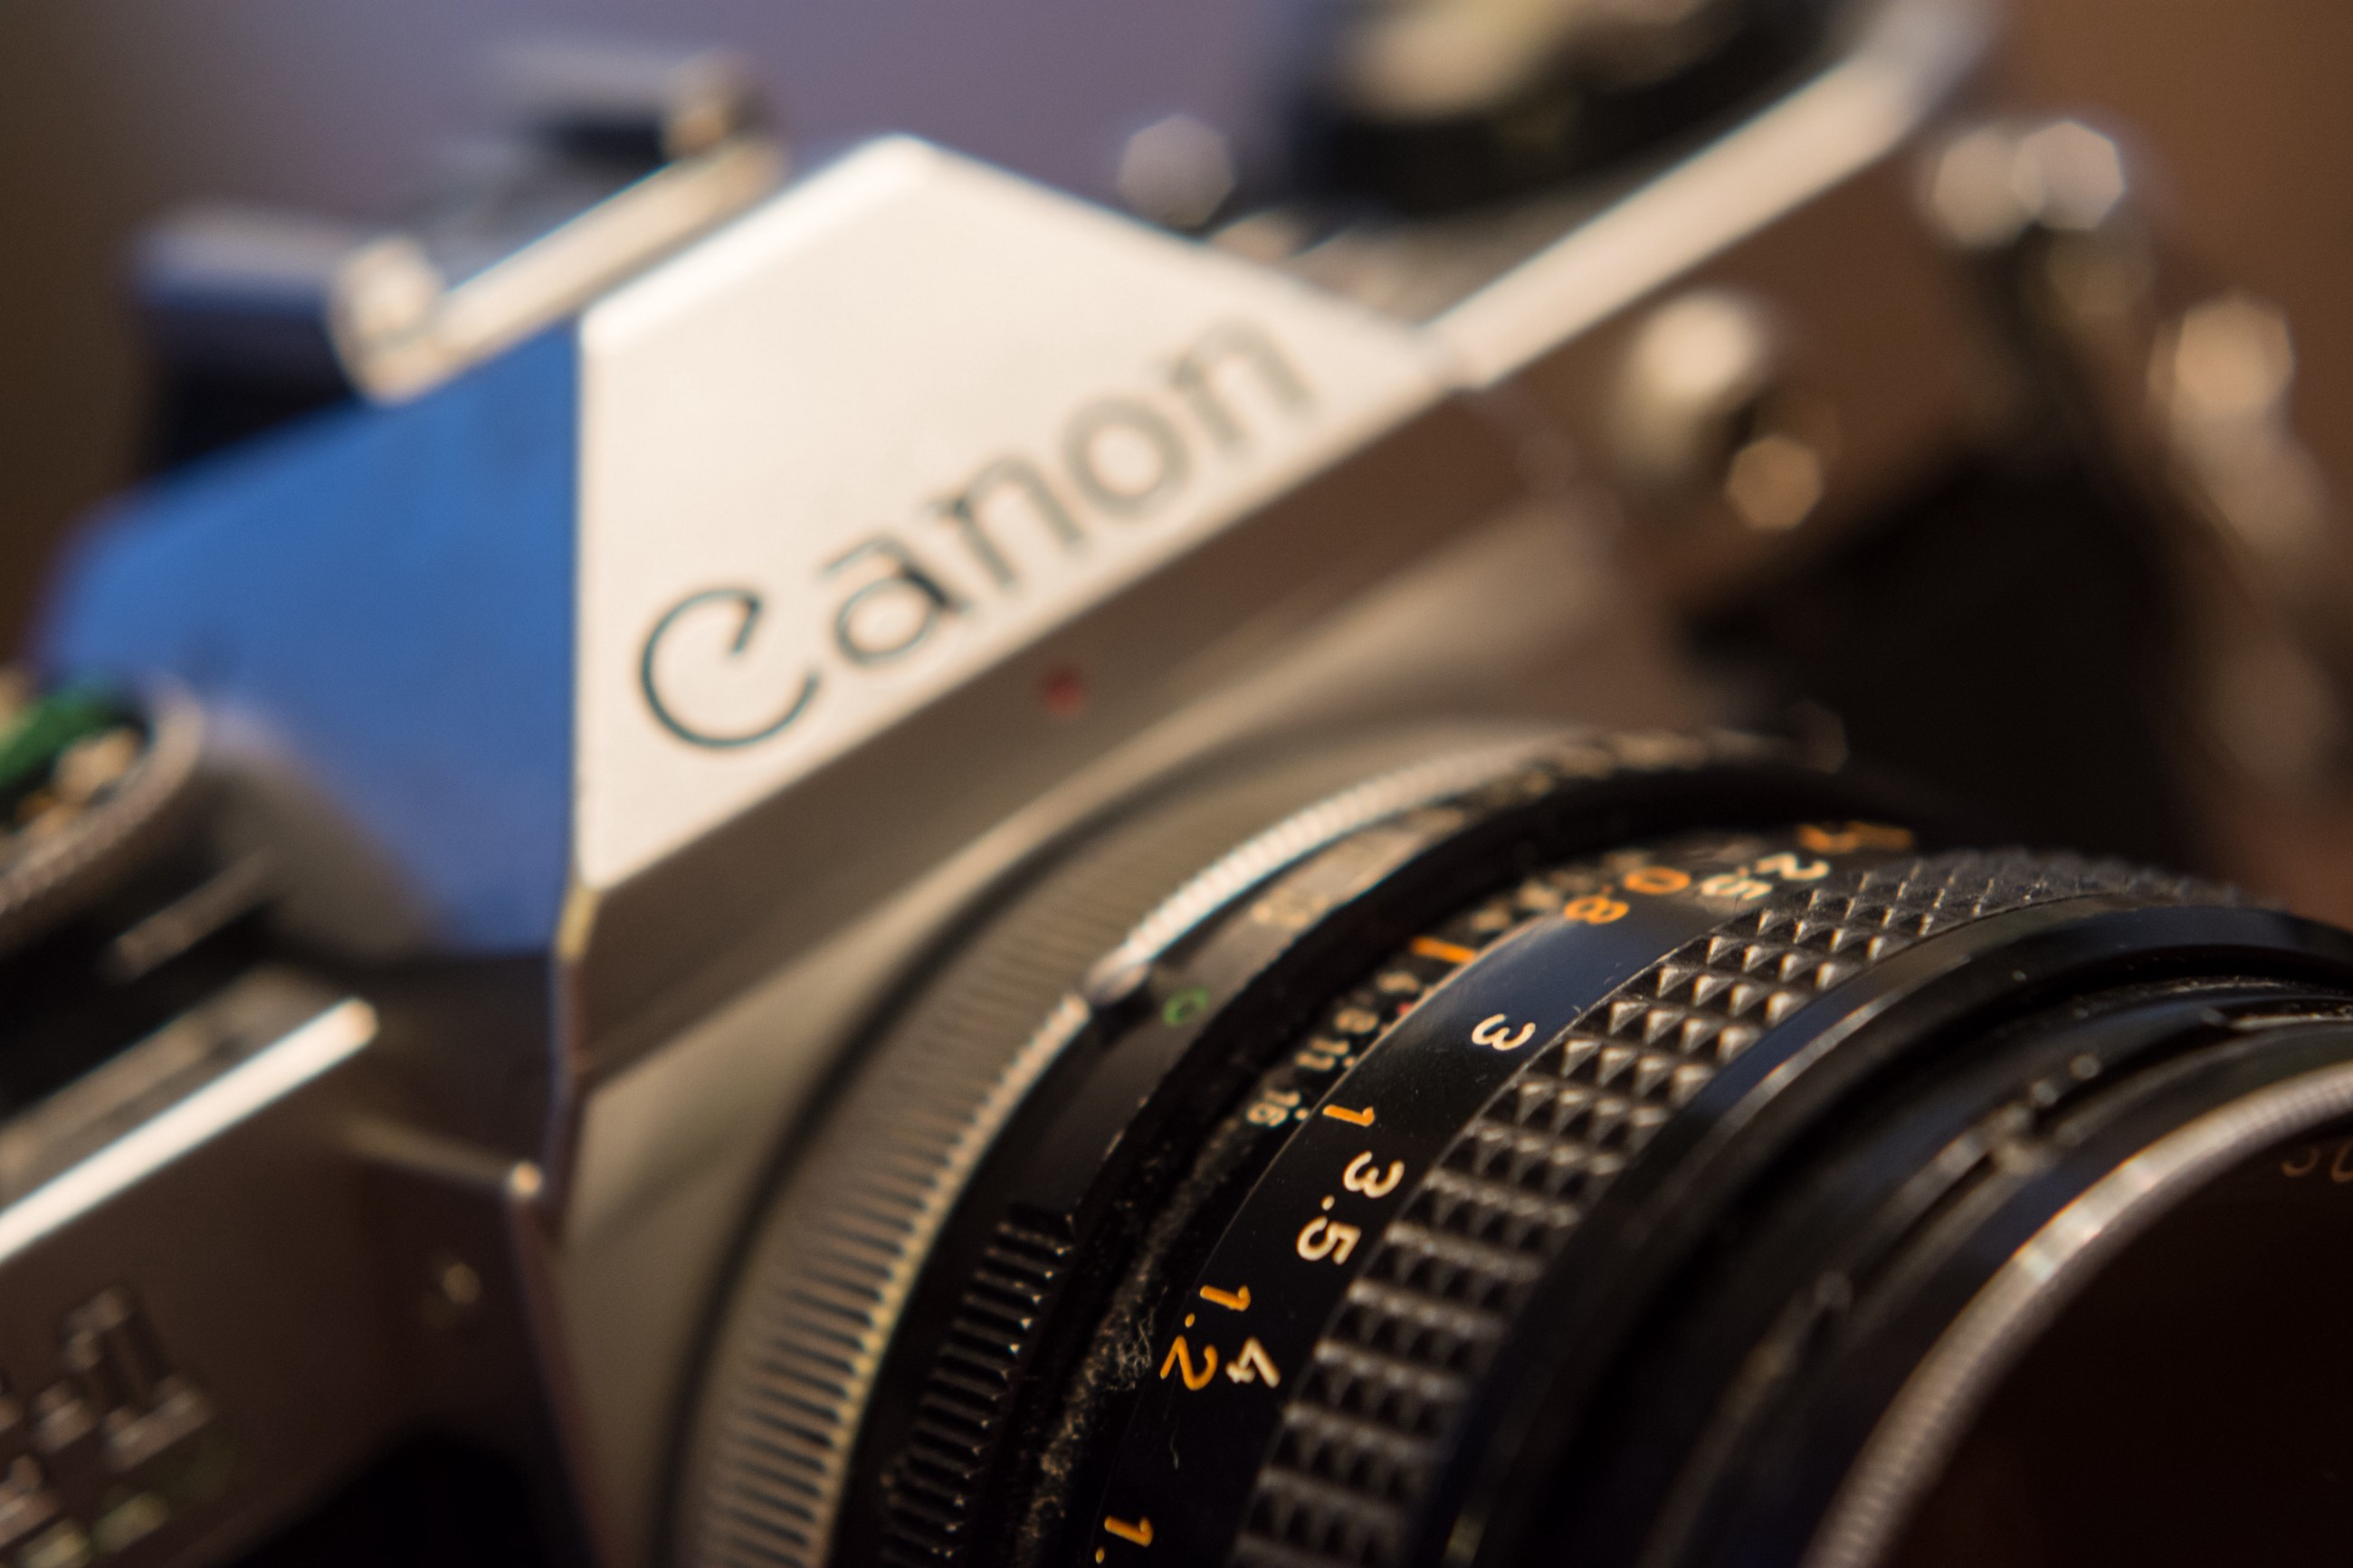 Canon's latest transfers show it wants more value from its patents while staying true to its anti-NPE ethos